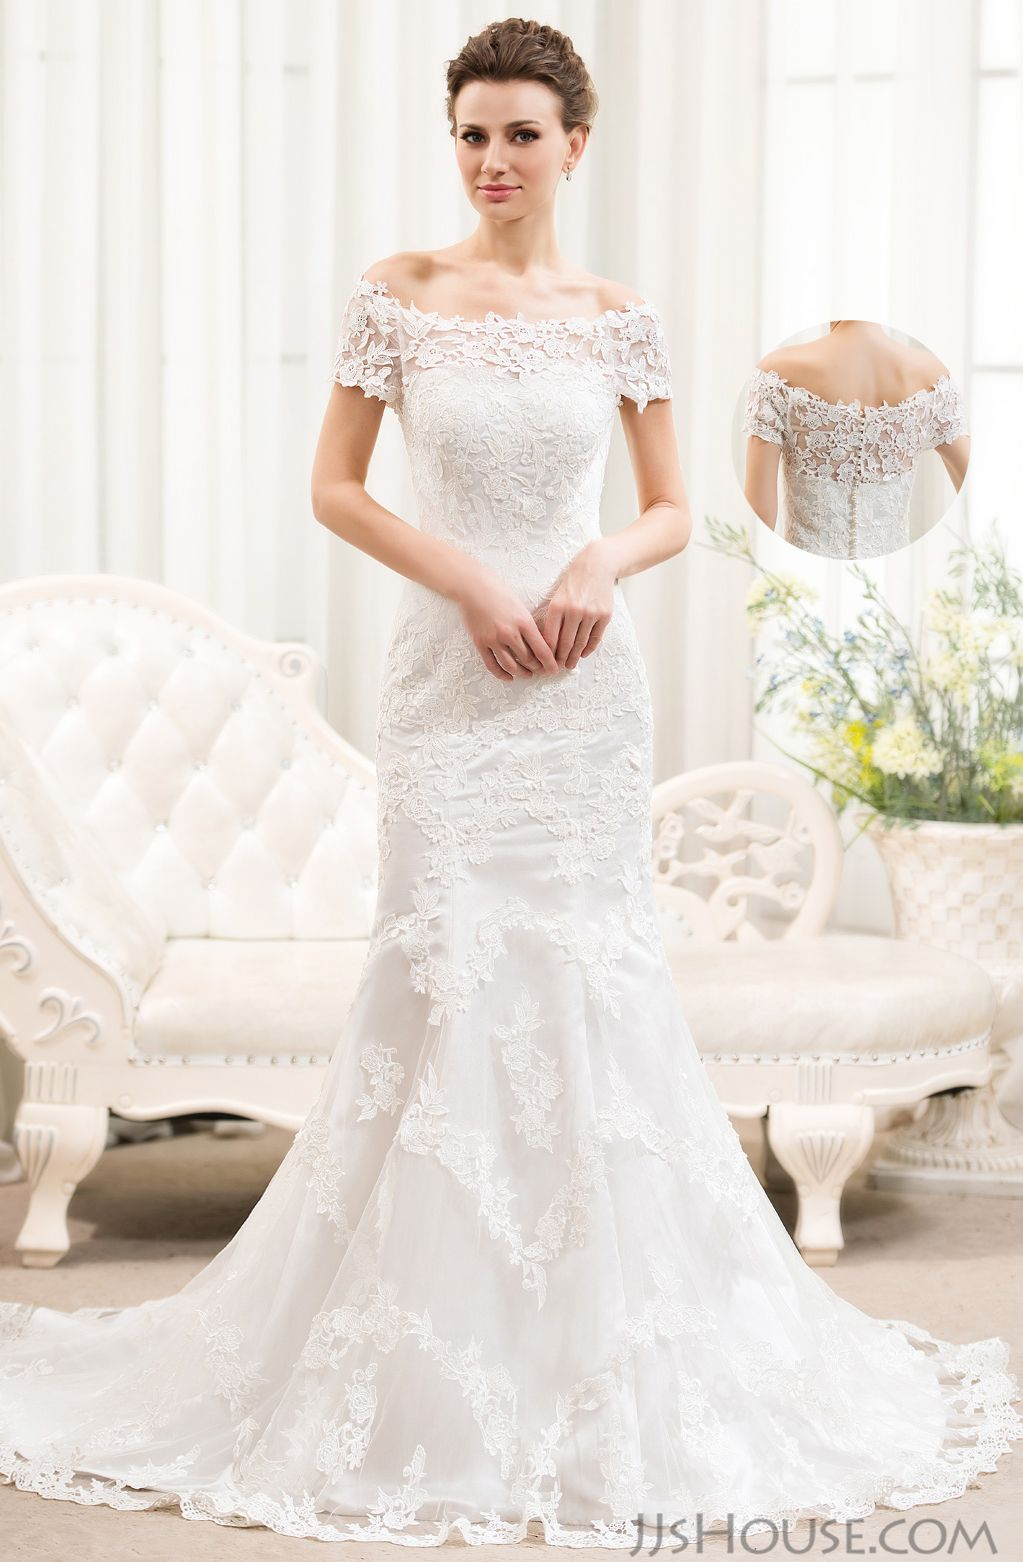 Trust me you will love the wedding dress from the first sight